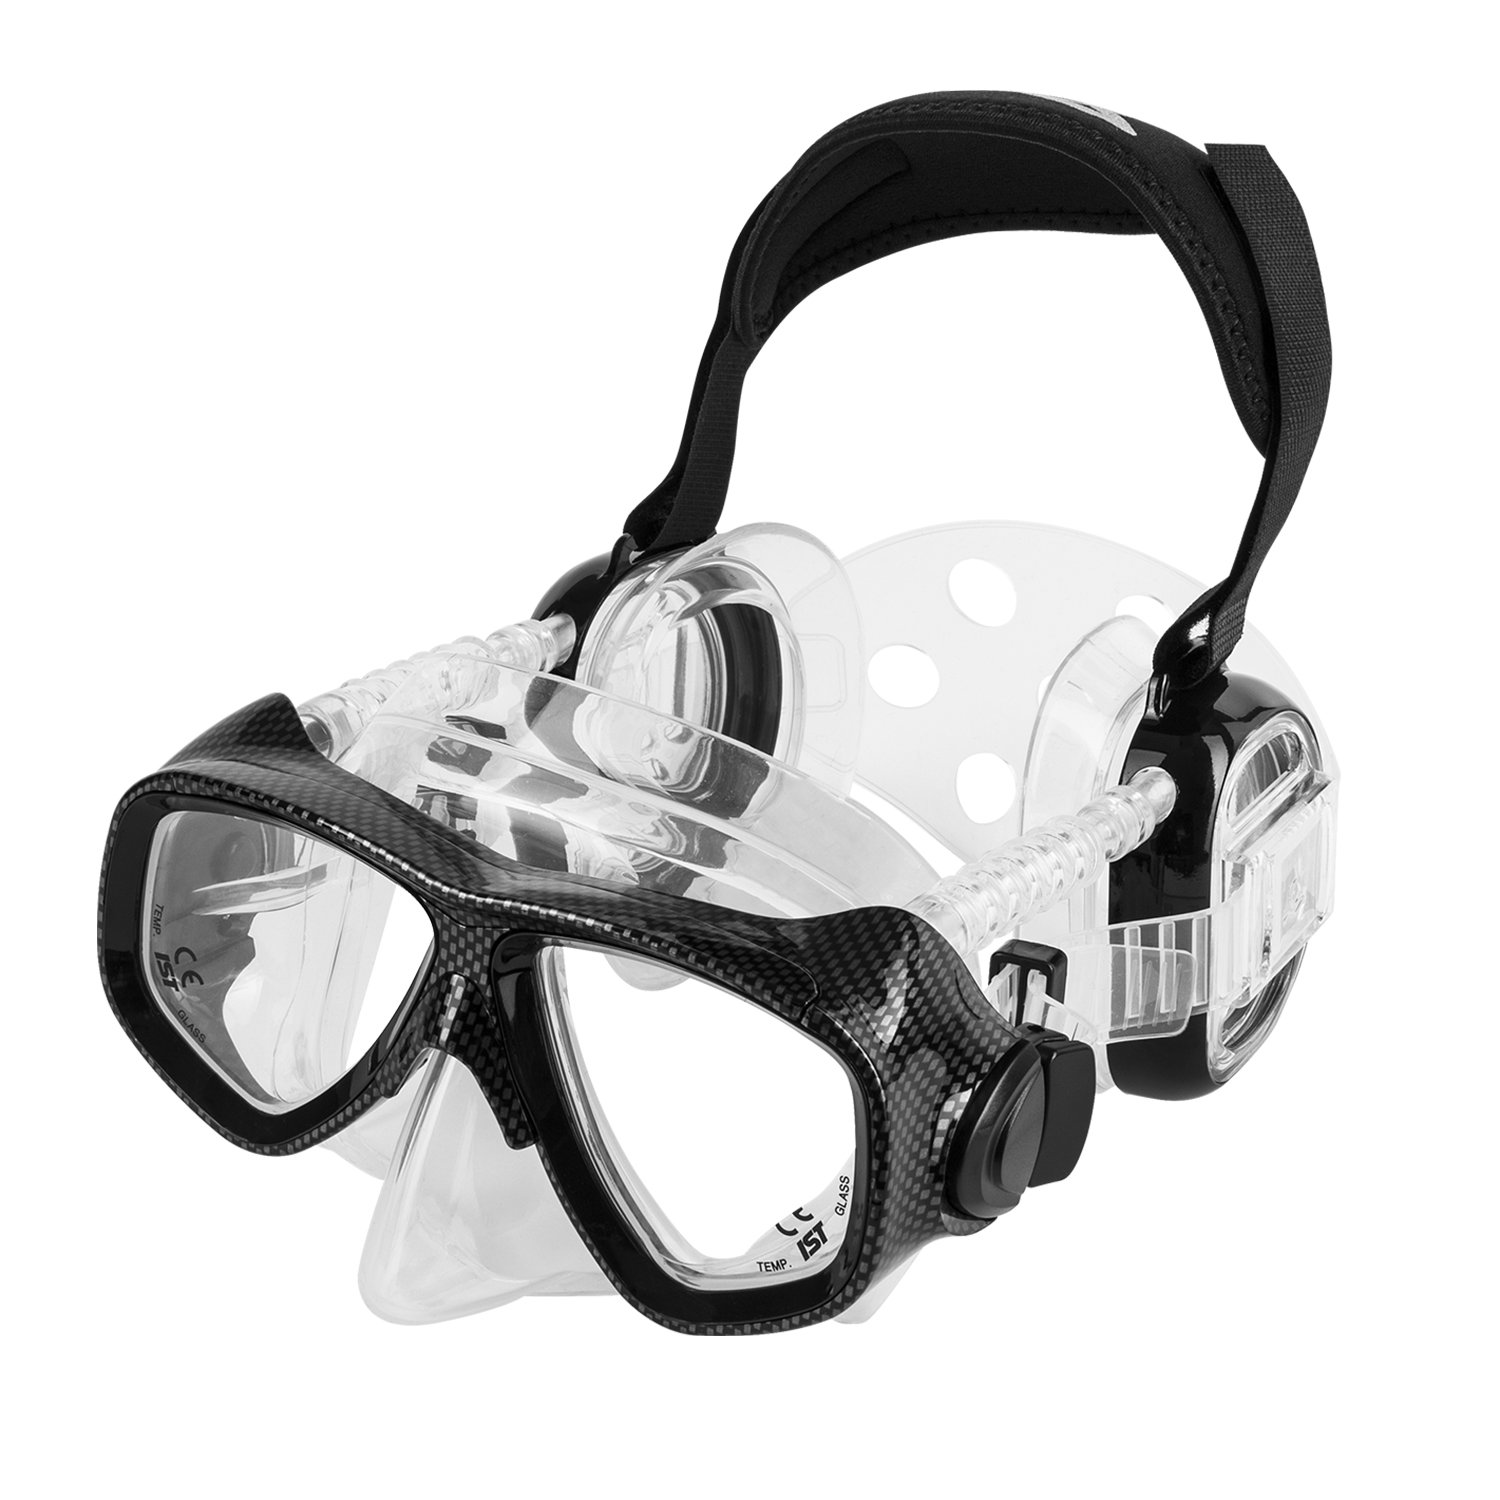 IST ProEar Dive Mask with Ear Covers, Scuba Diving Pressure Equalization Gear, Tempered Glass Twin Lens (Black) by IST